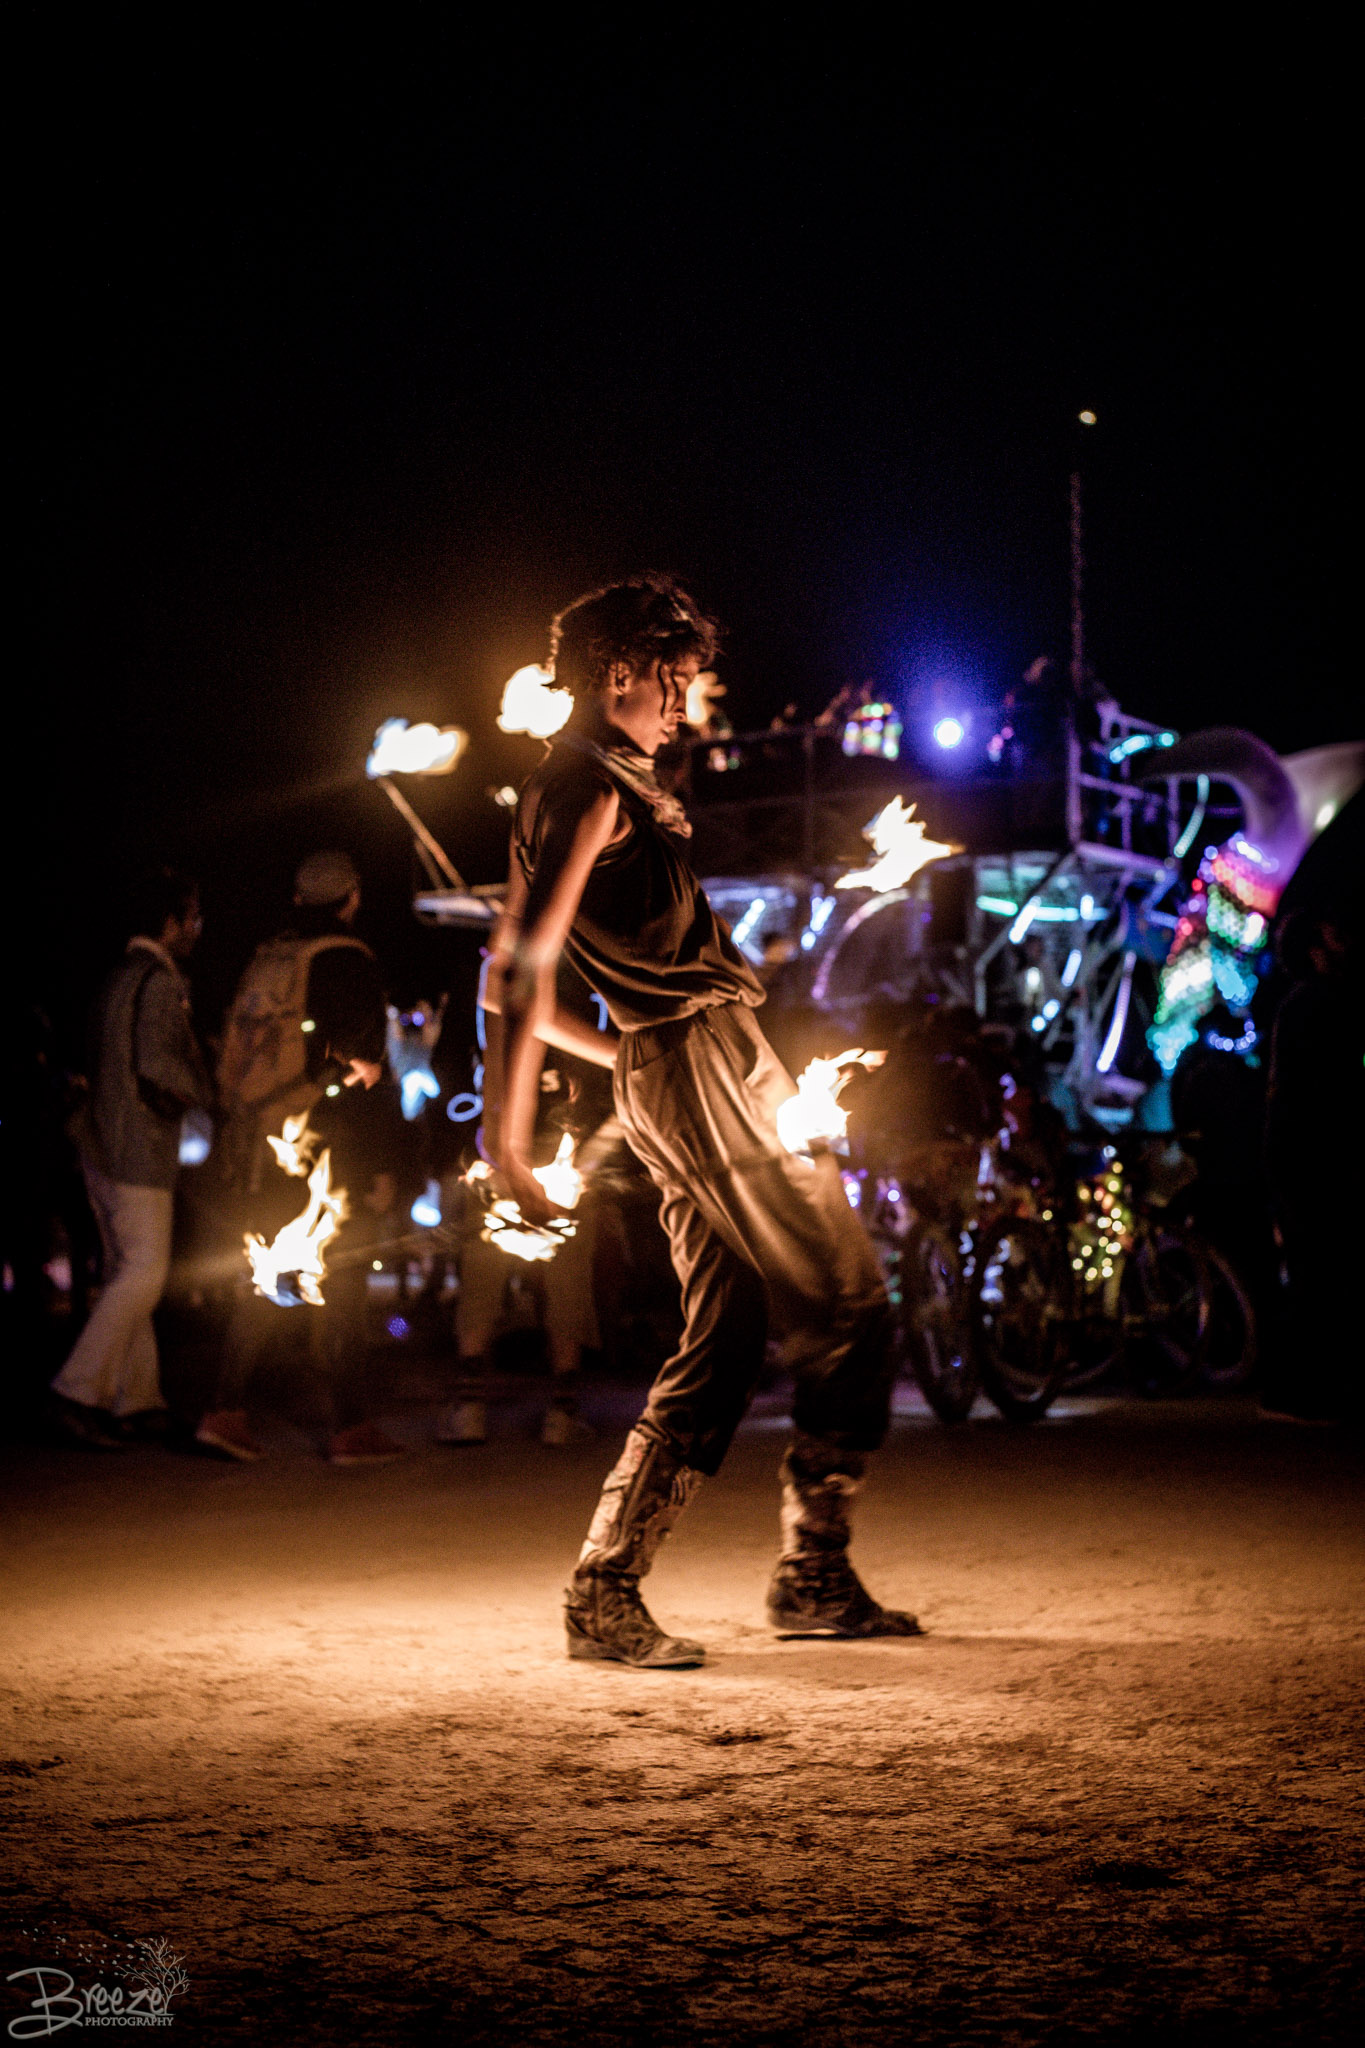 Brie'Ana Breeze Photography & Media - Burning Man 2018-4162.jpg